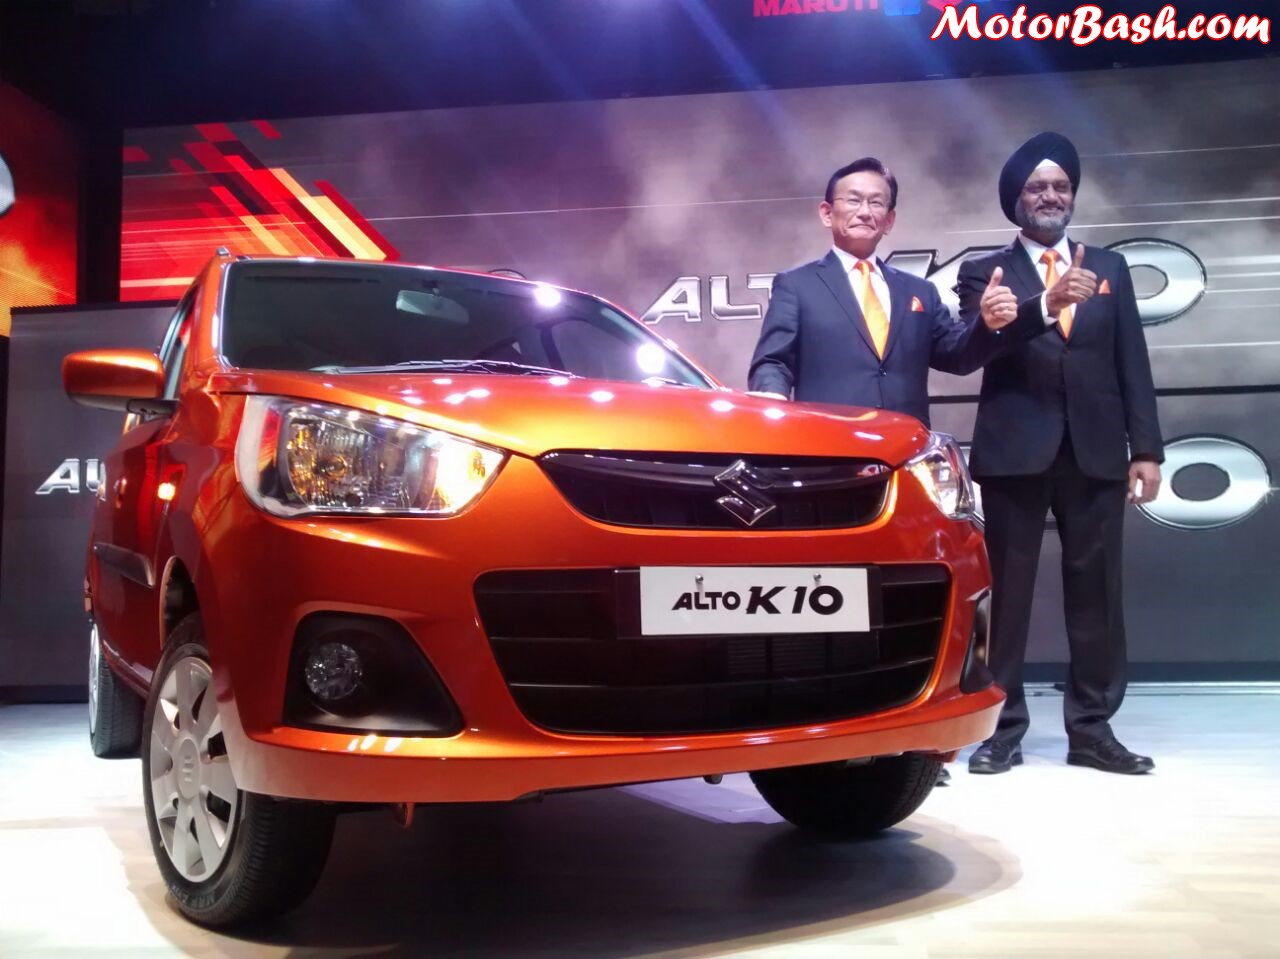 New-2015-Maruti-Alto-K10-Launch-Pic (2)